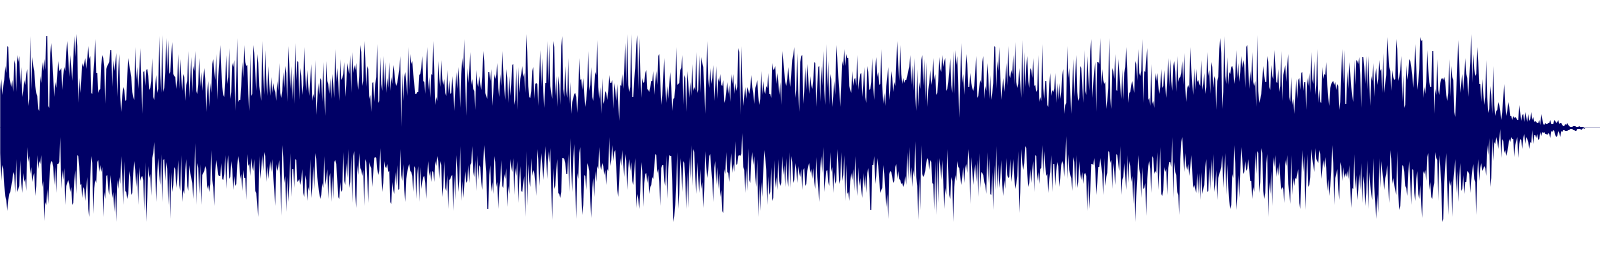 waveform of track #132386